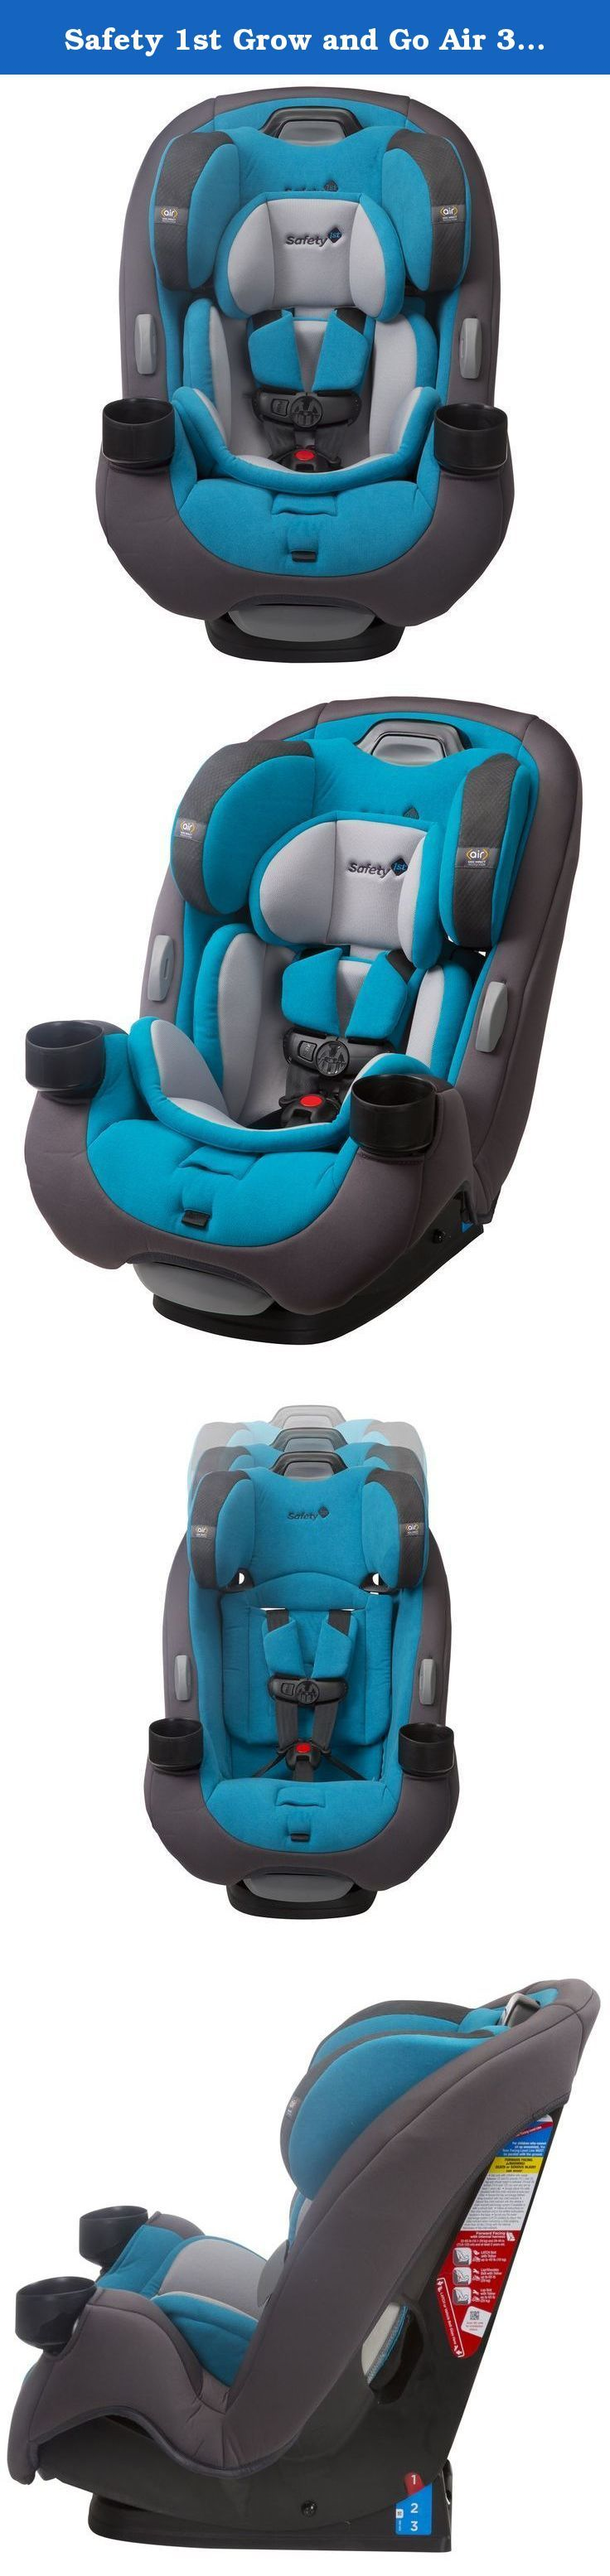 Safety 1st Grow and Go Air 3-in-1 Car Seat, Evening Tide. Get the car seat that's built to grow and provide your child with superior protection every step of the way. From your first ride together coming home from the hospital to soccer game car pools, the 3-in-1 Grow and Go Air Car Seat from Safety 1st will give your child a safer and more comfortable ride. Featuring extended use at each stage, this convertible car seat is designed to last through all your firsts with your child. From...